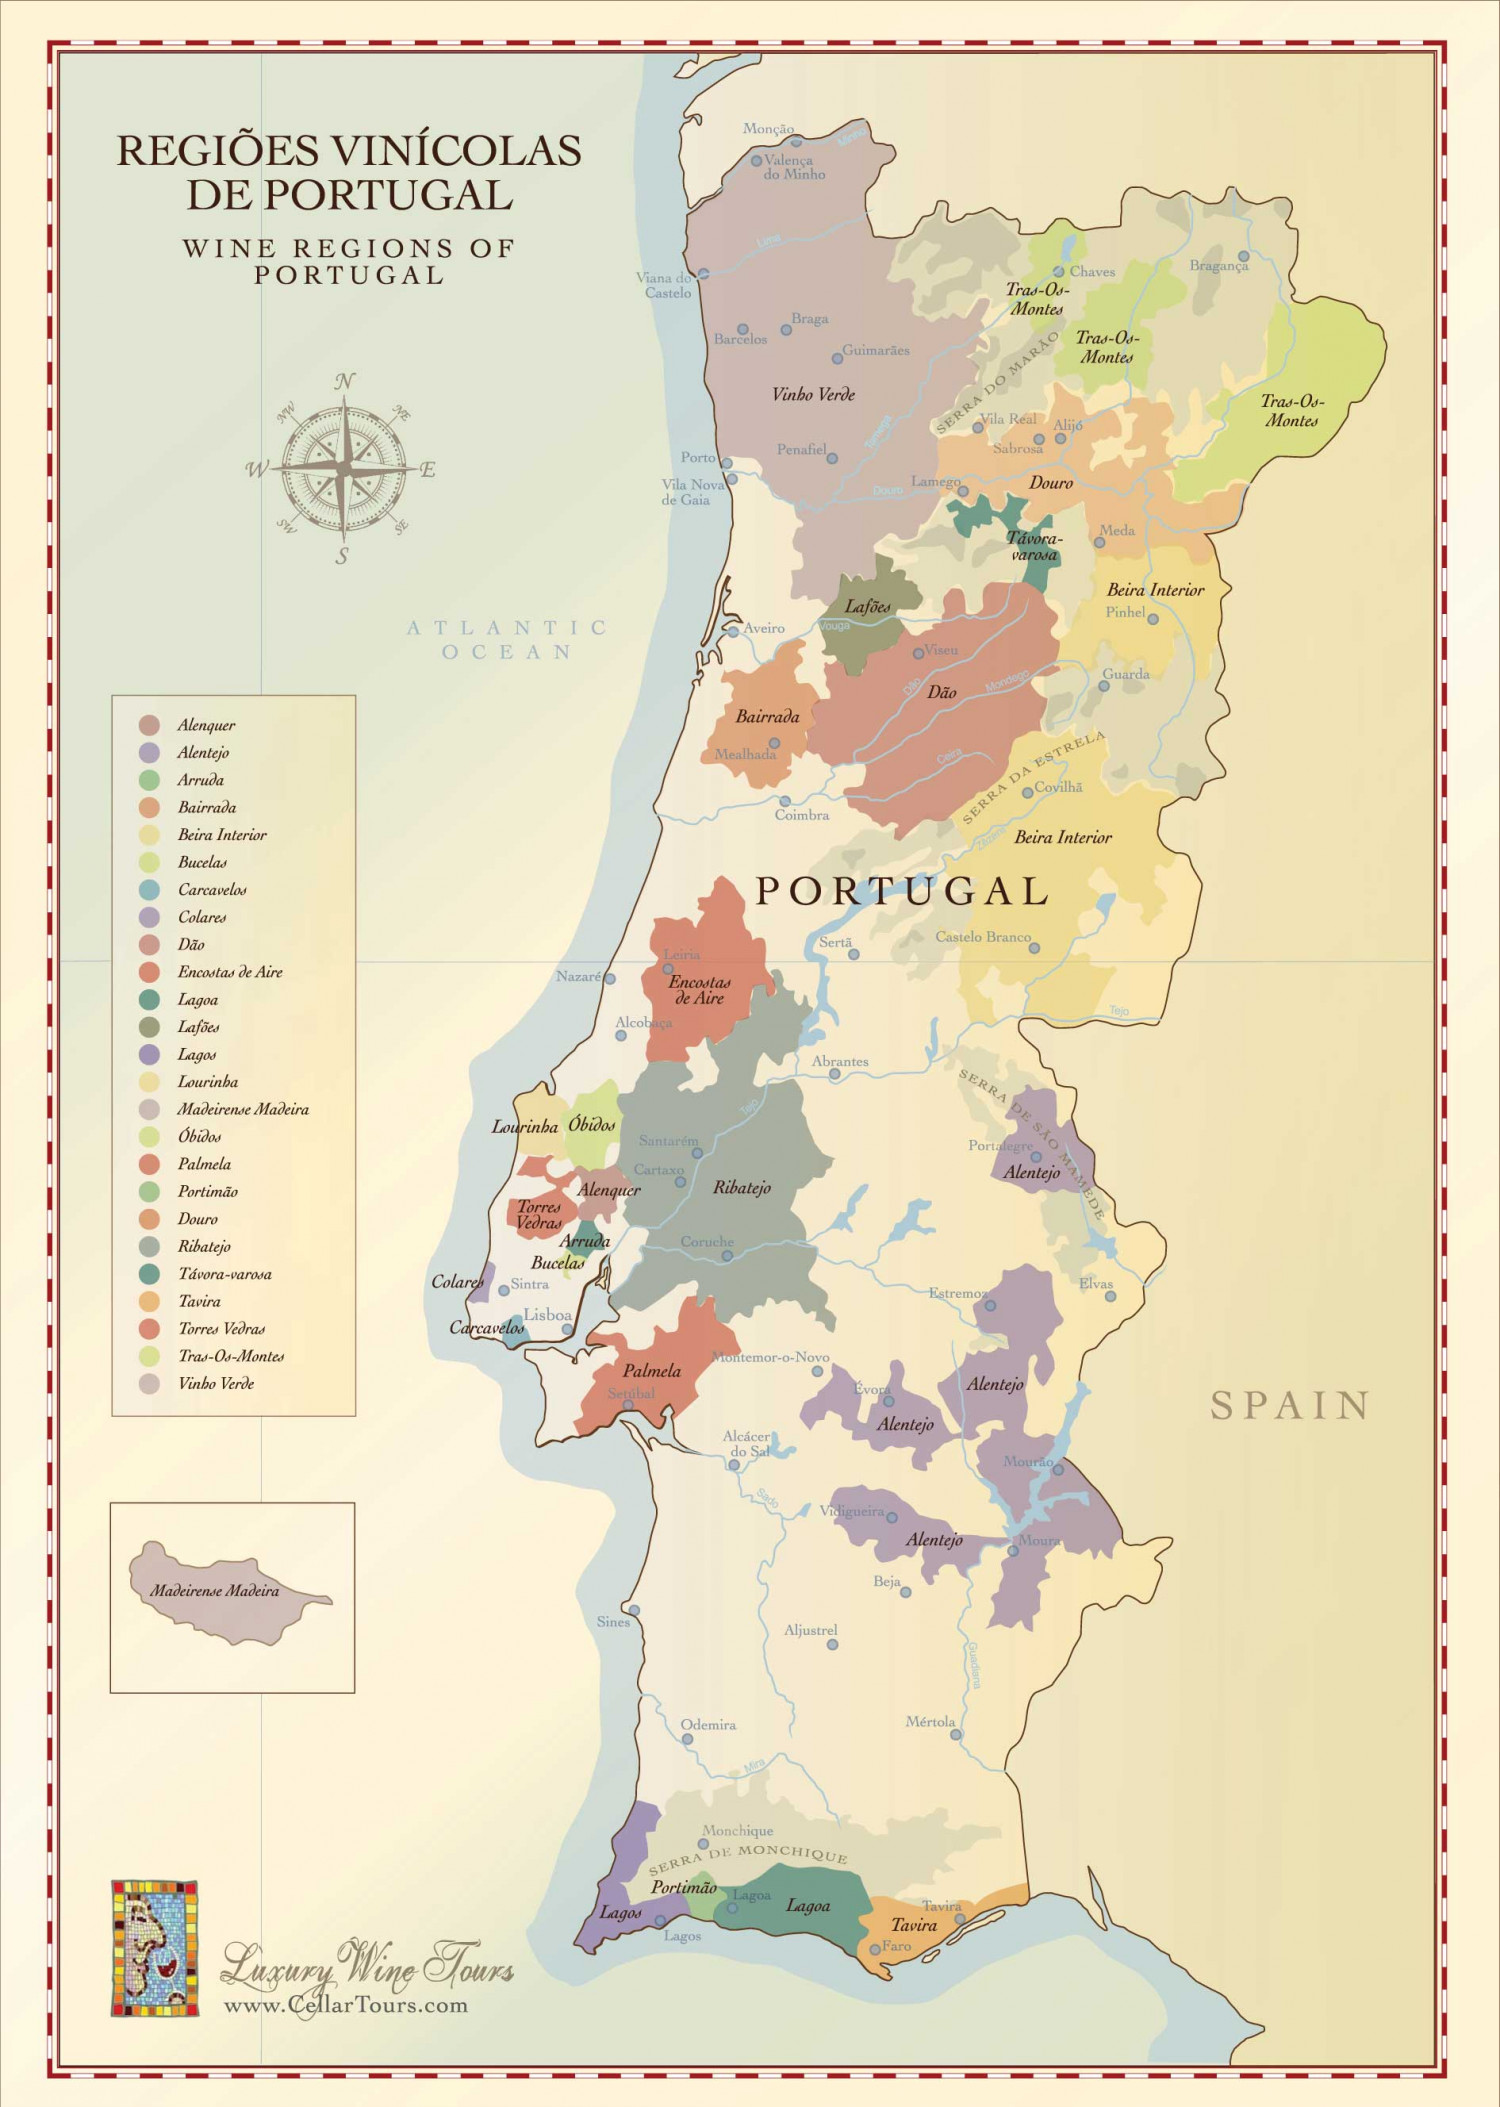 Map of Portuguese Wine Regions Infographic